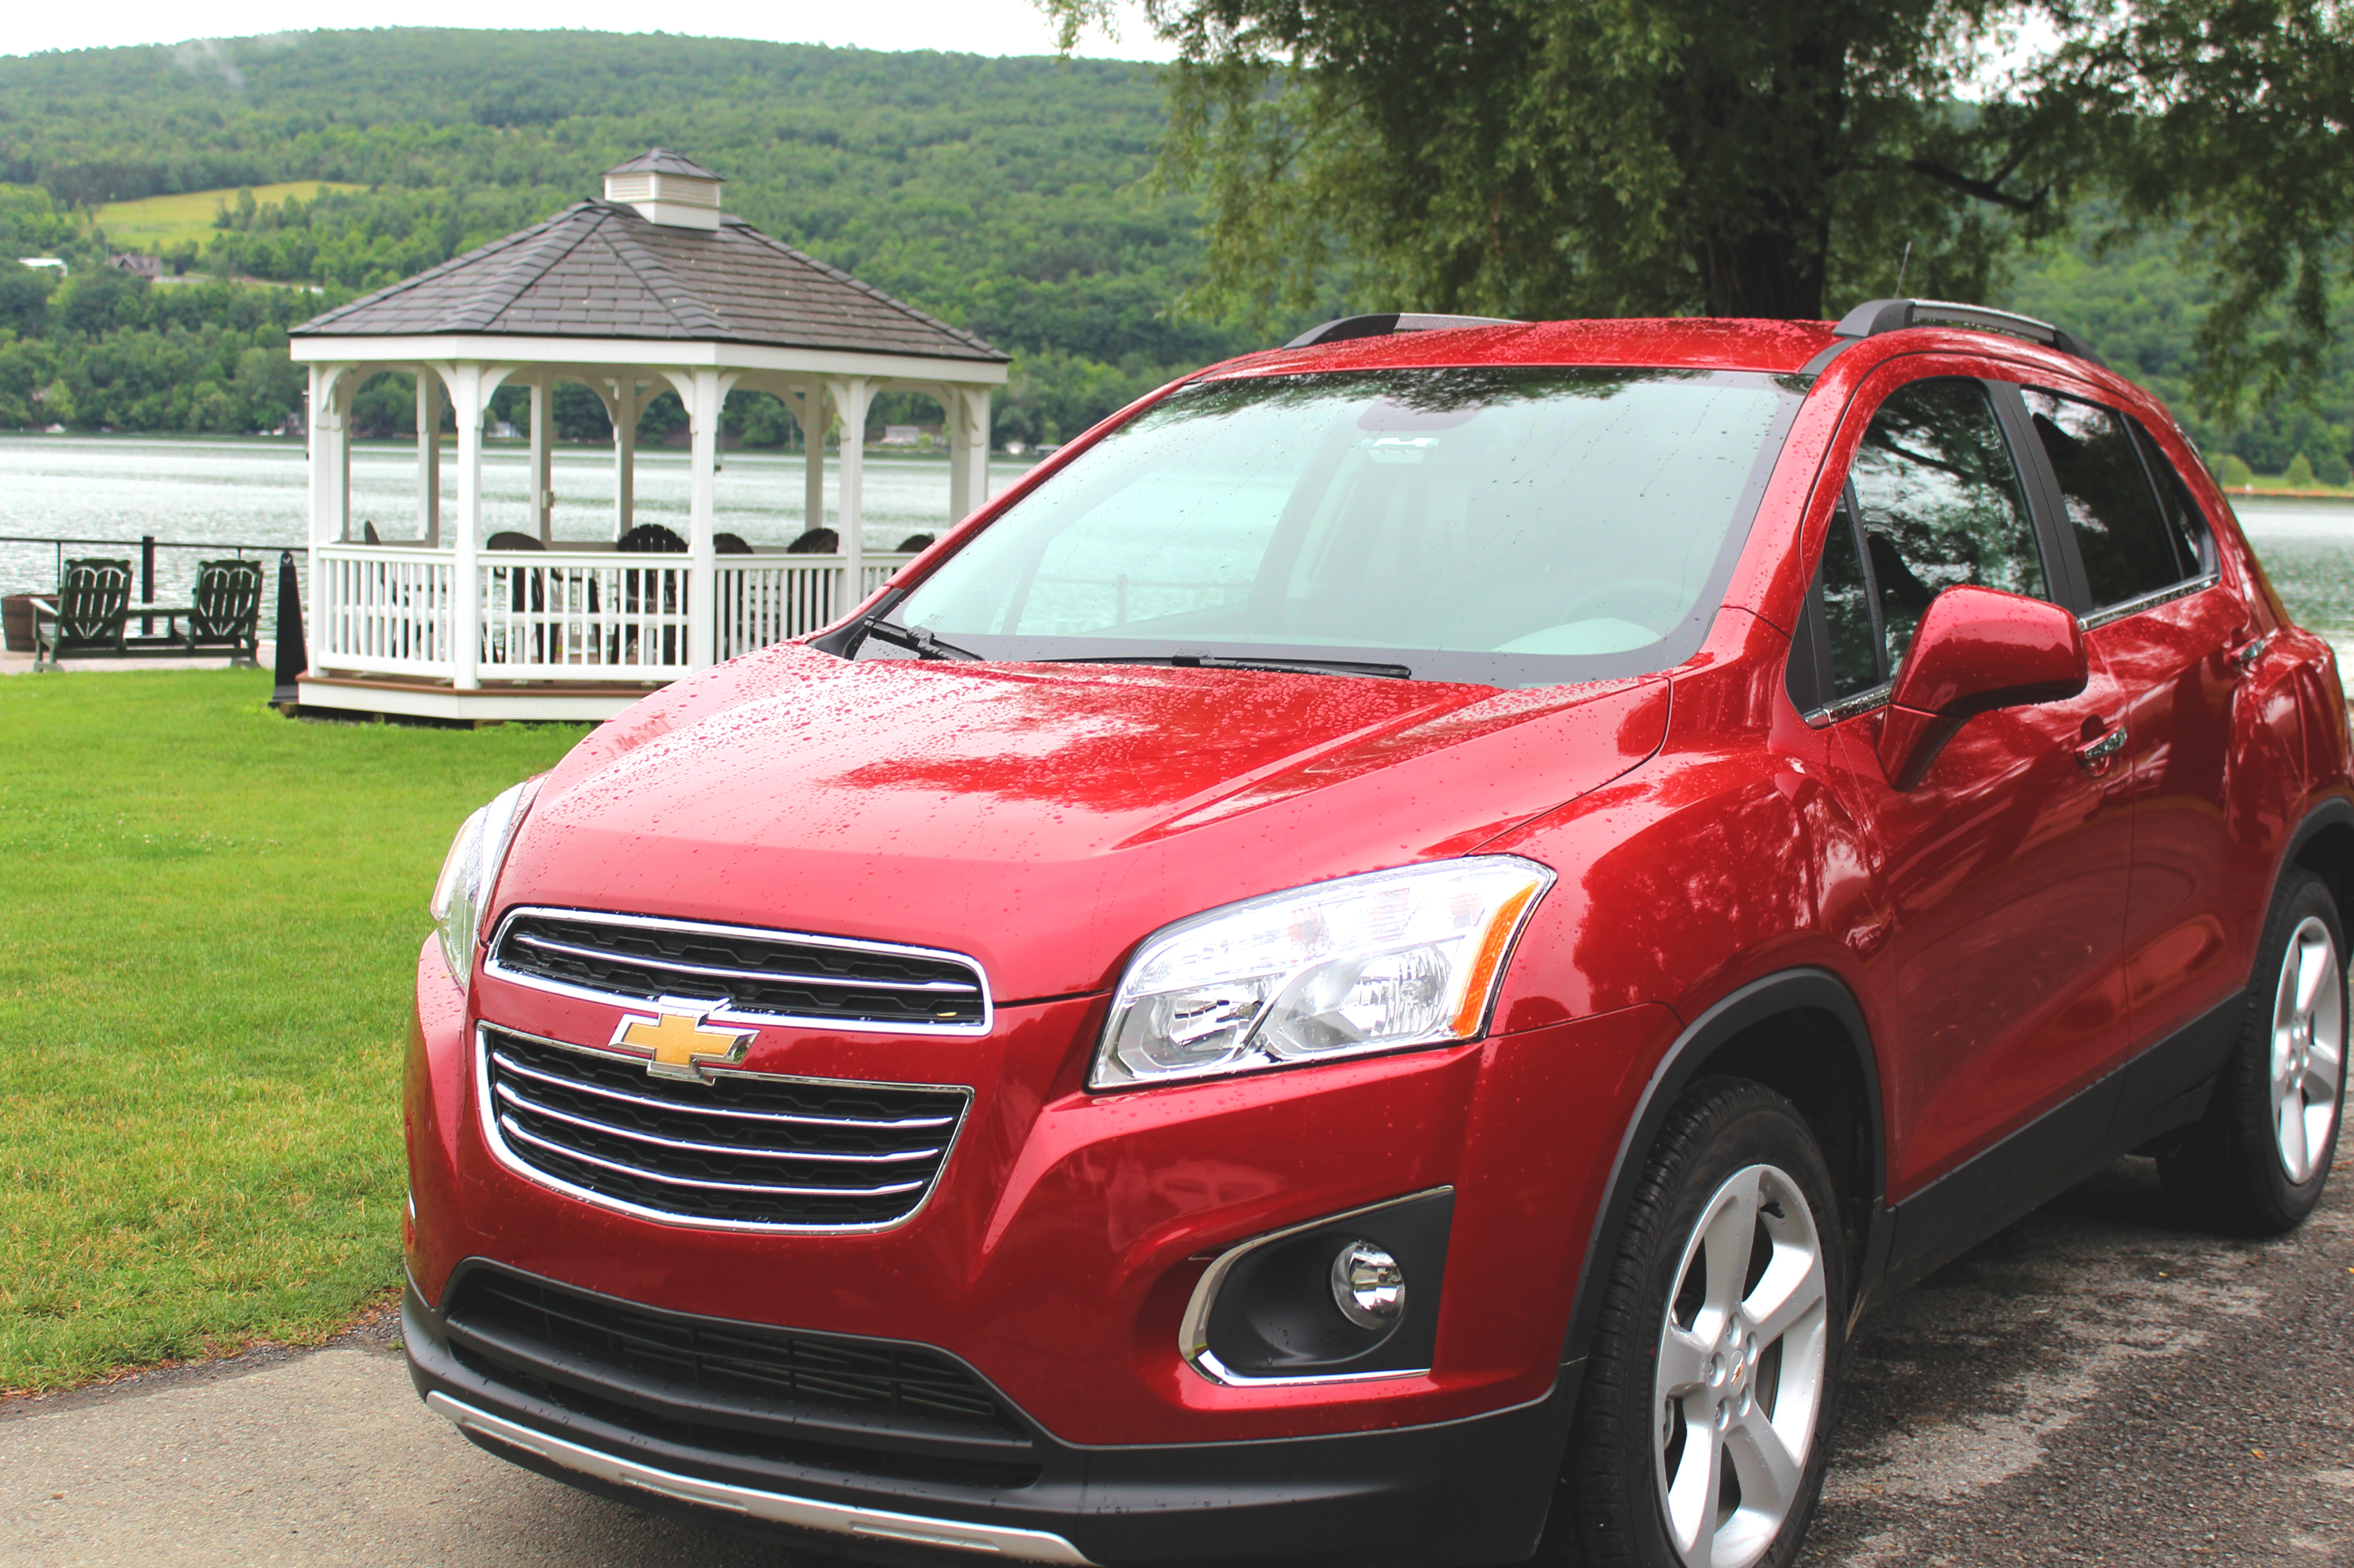 Best Compact SUV - Chevrolet Trax Review